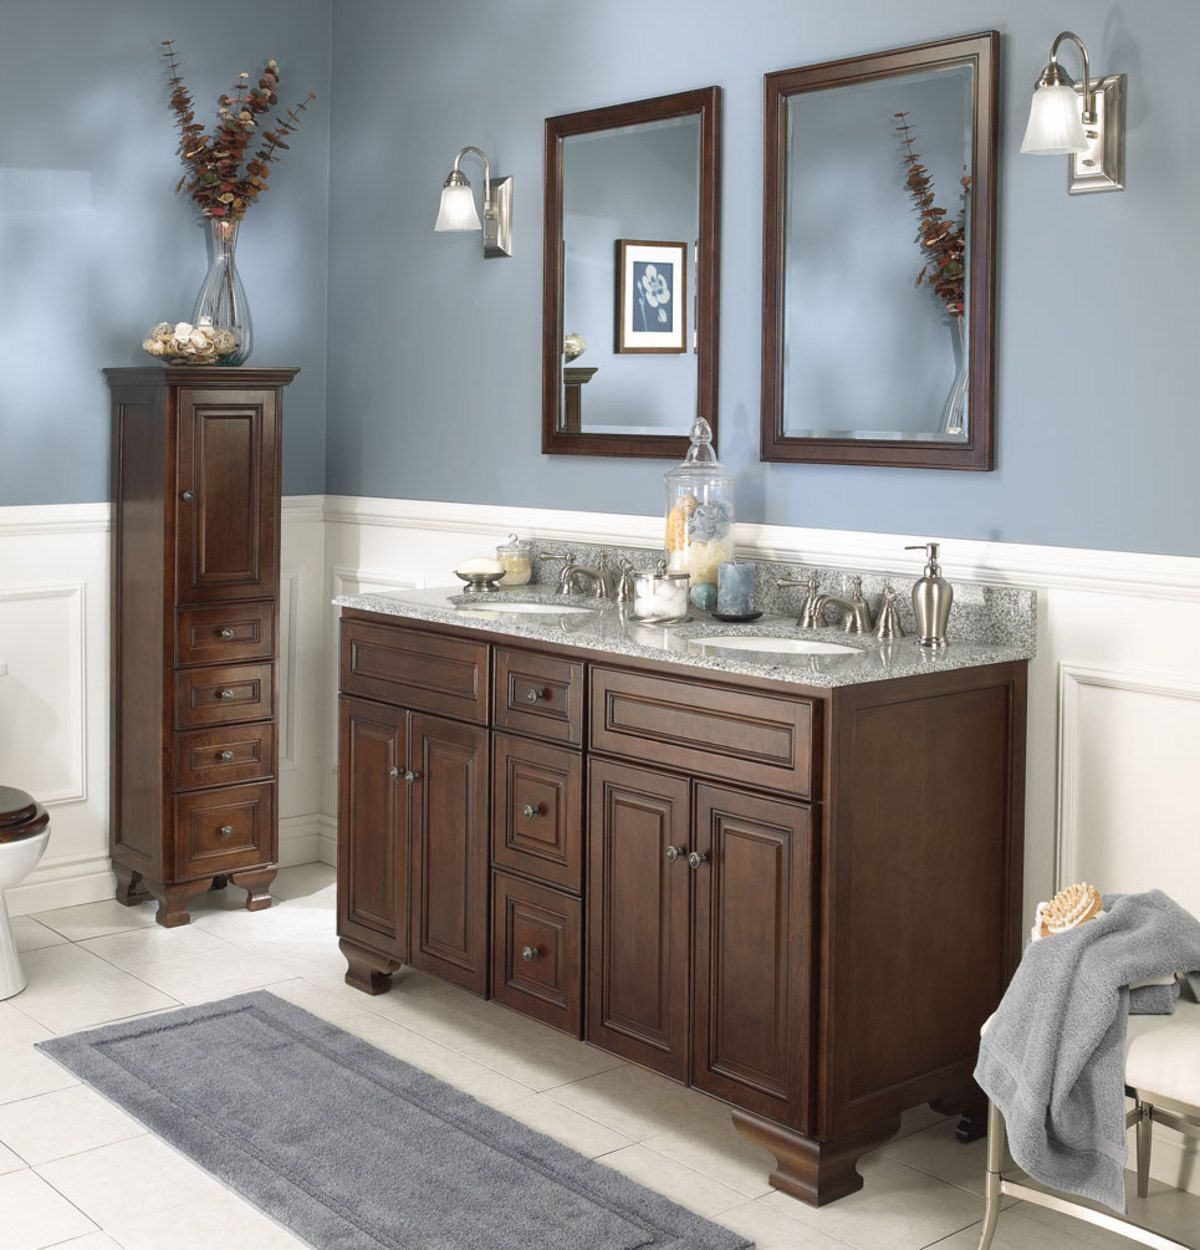 Accessories Furniture Nice Spectacular Blue Wall Paint Bathroom Vanity Ideas For Small Bathroom D Bathroom Wall Colors Double Vanity Bathroom Brown Bathroom